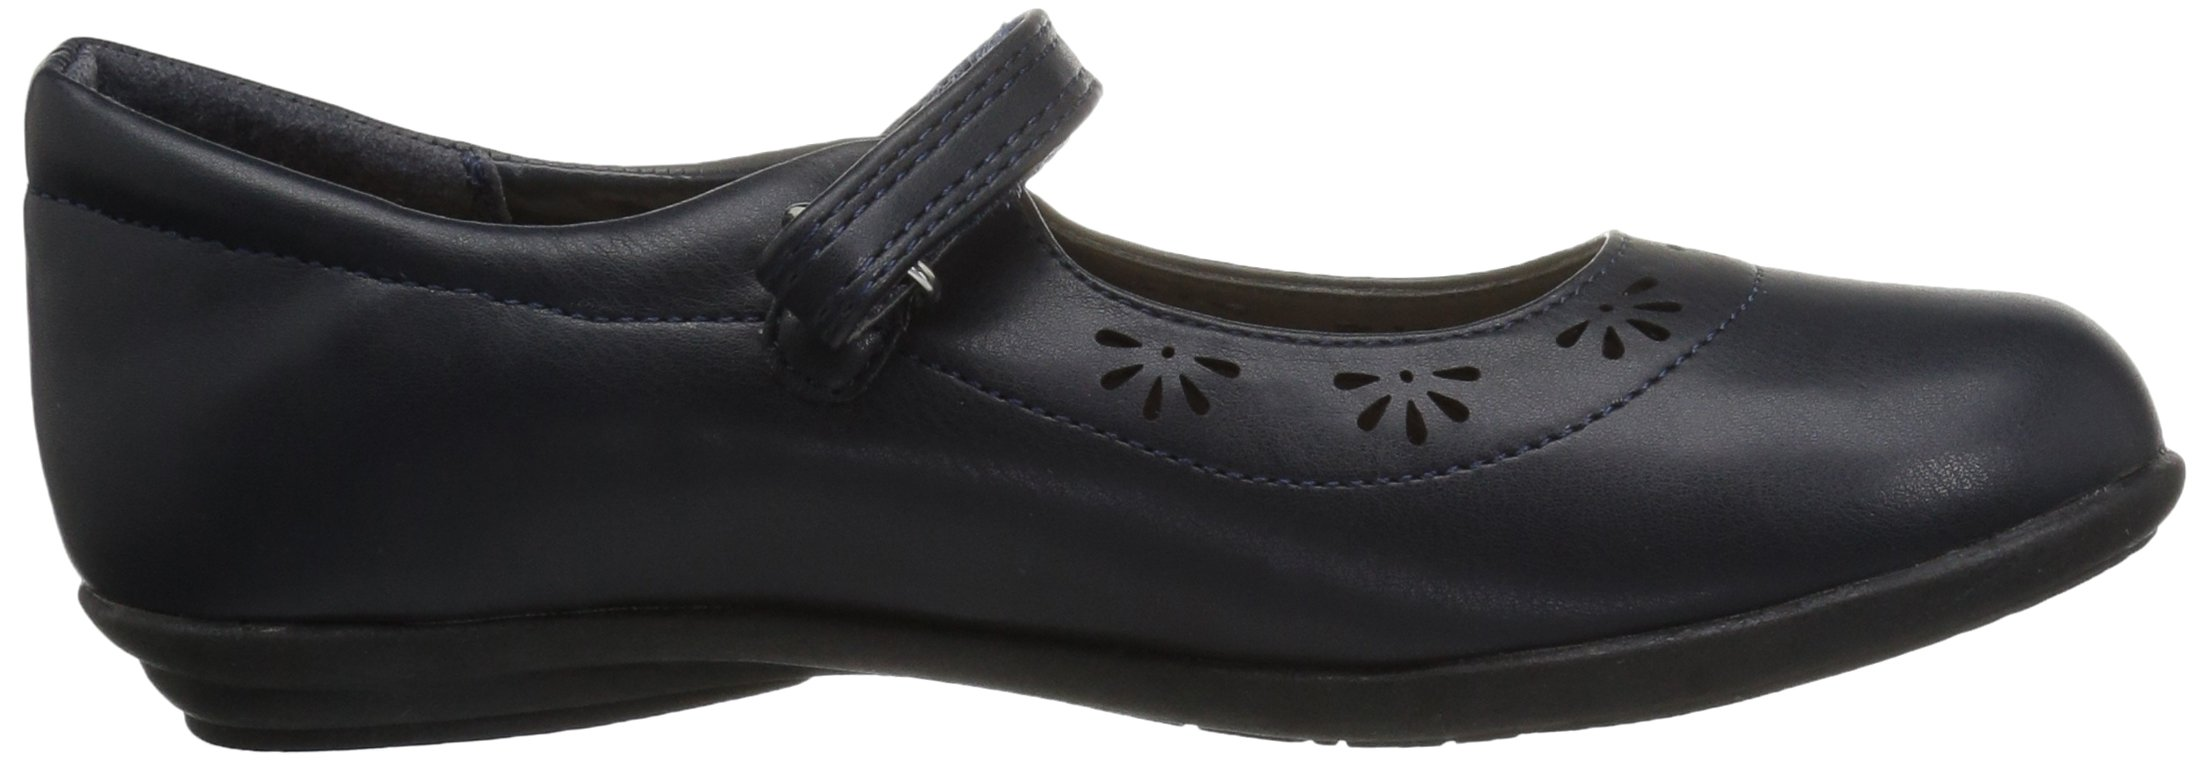 The Children's Place Girls' E BG Unif Class Uniform Dress Shoe, New Navy, Youth 1 Youth US Big Kid by The Children's Place (Image #6)